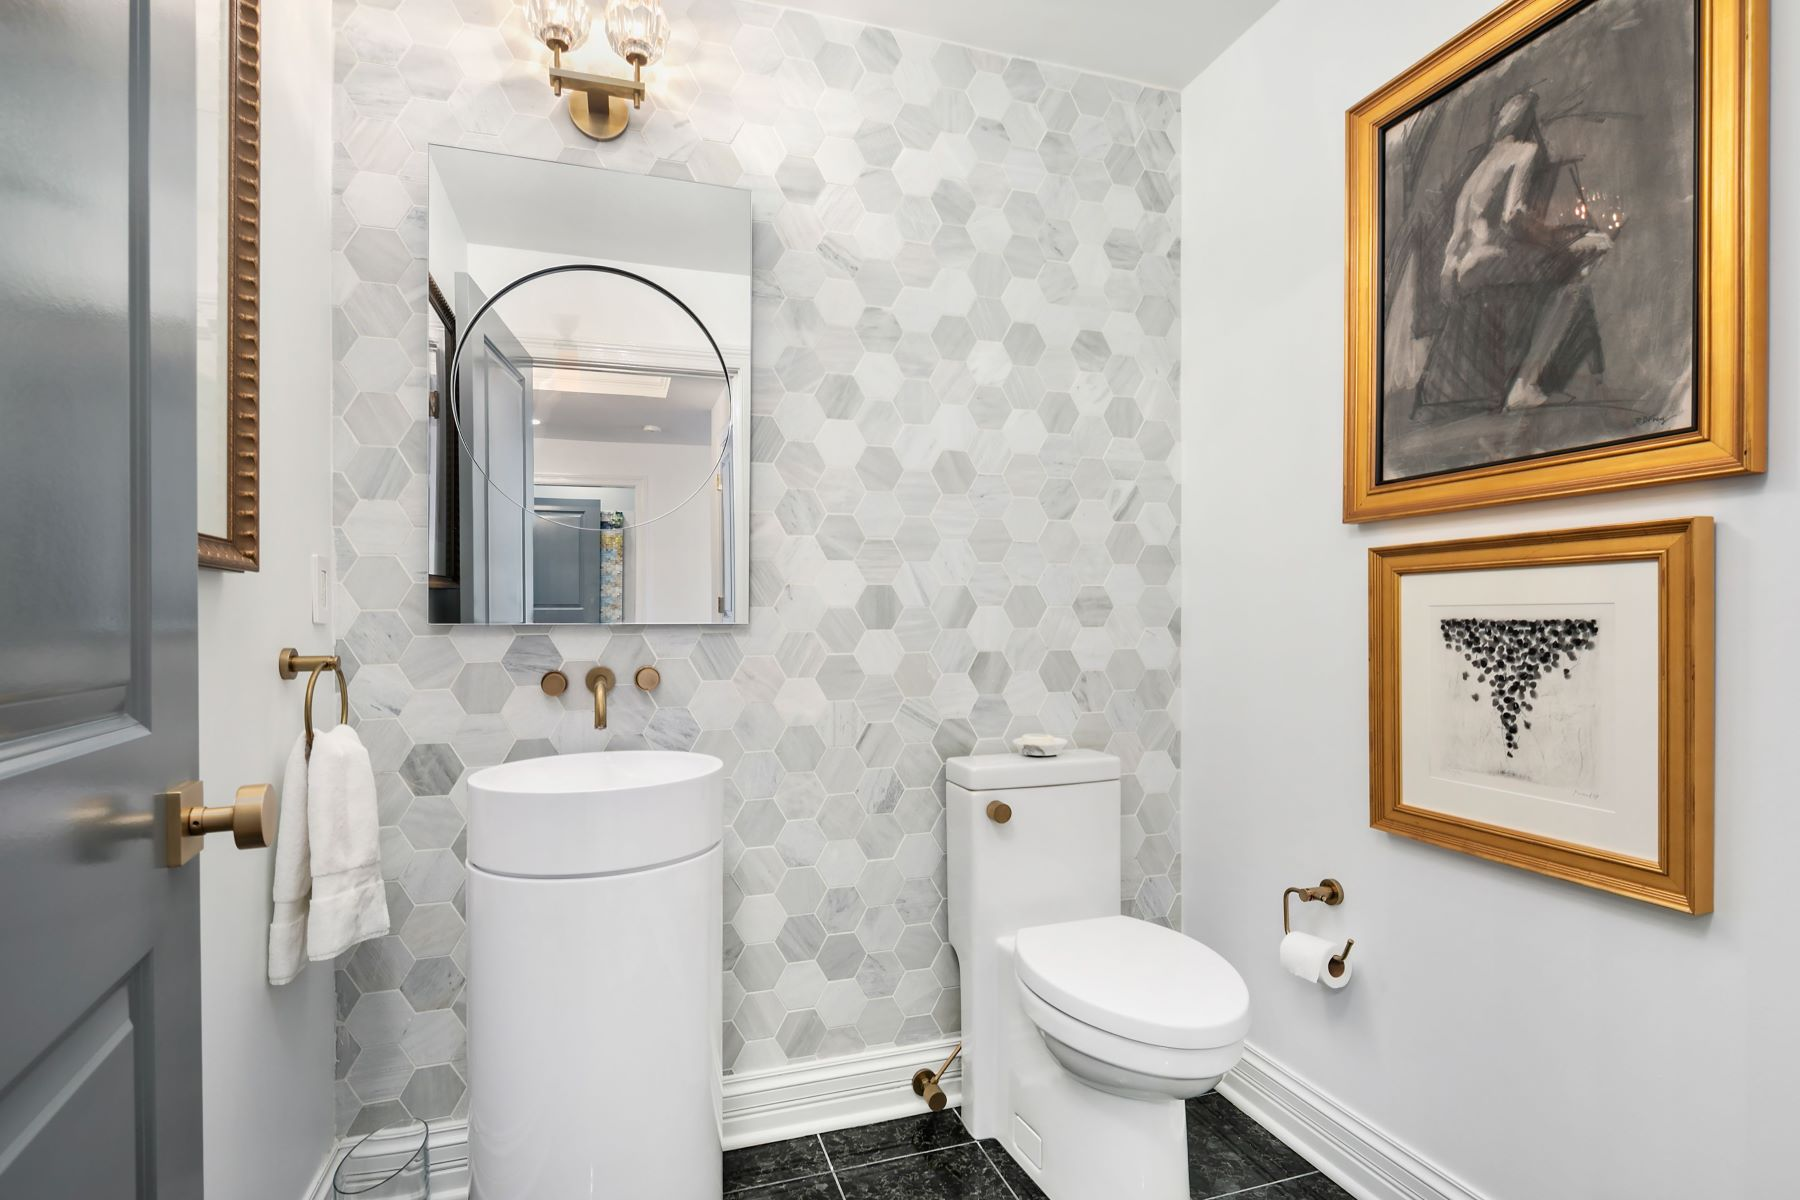 Additional photo for property listing at Swanky Chase Park Plaza Residence 232 North Kingshighway Boulevard #1408 St. Louis, Missouri 63108 United States